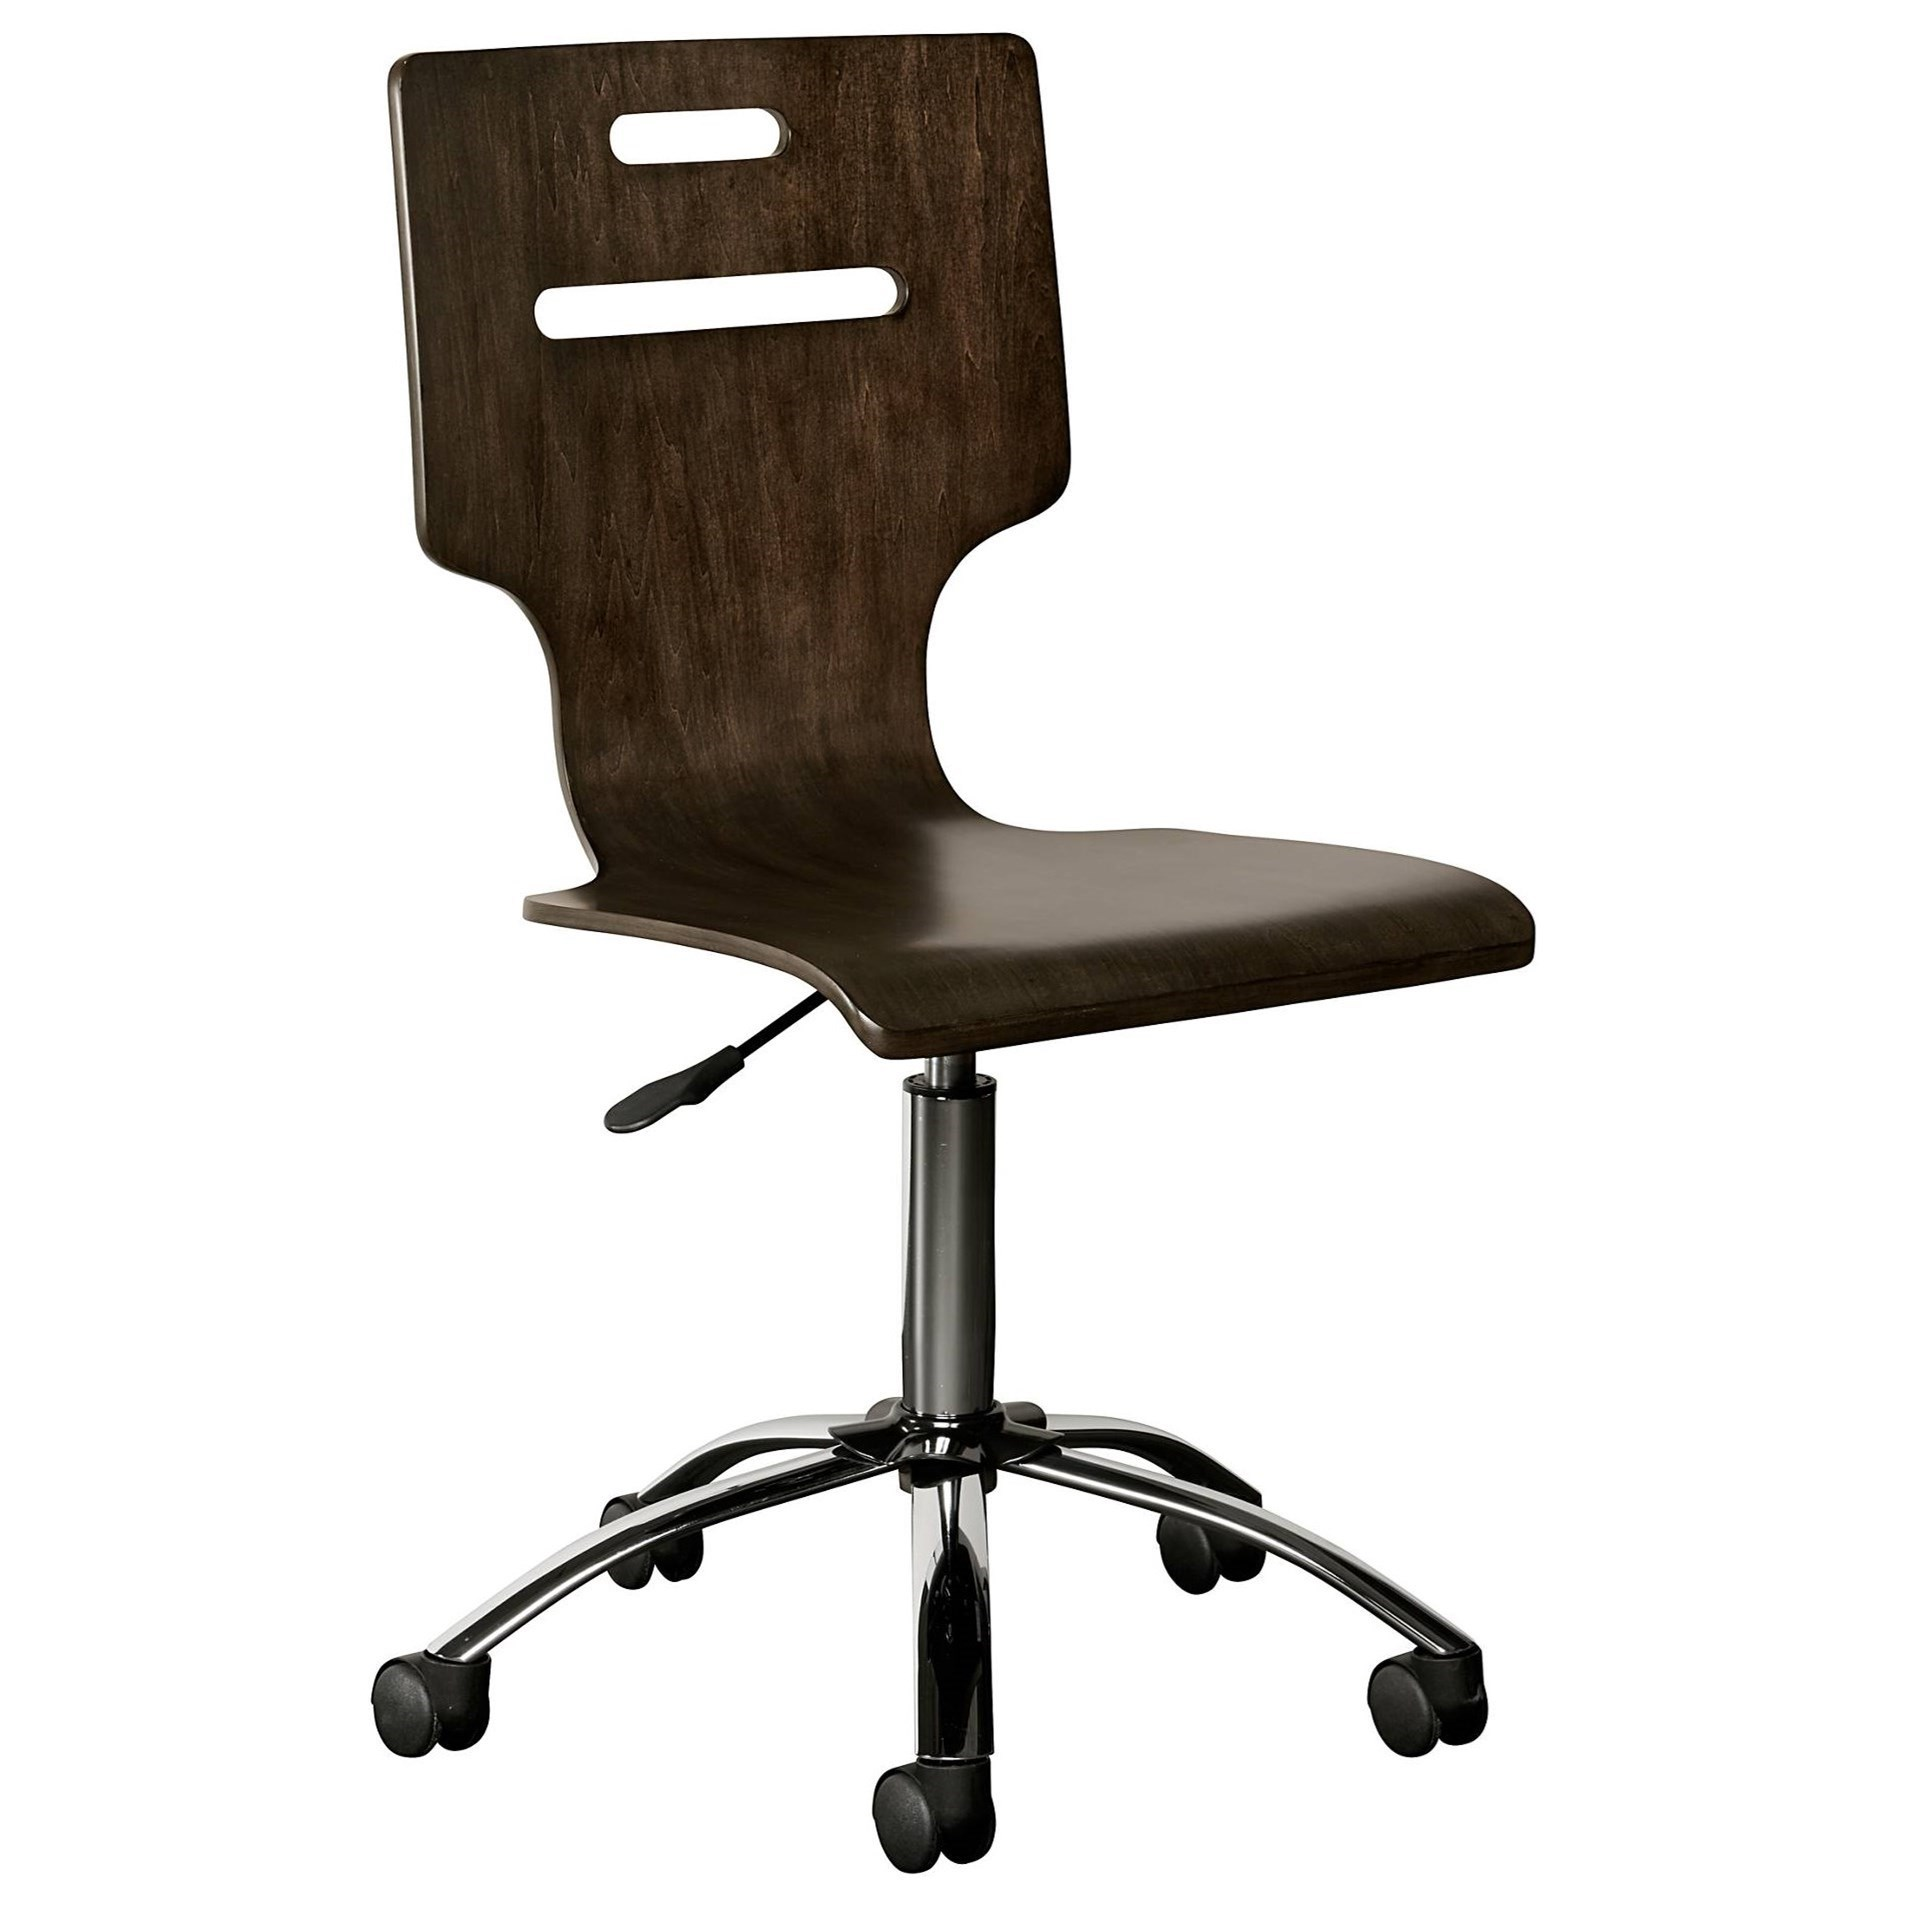 Chelsea Square Desk Chair by Stone & Leigh Furniture at Alison Craig Home Furnishings